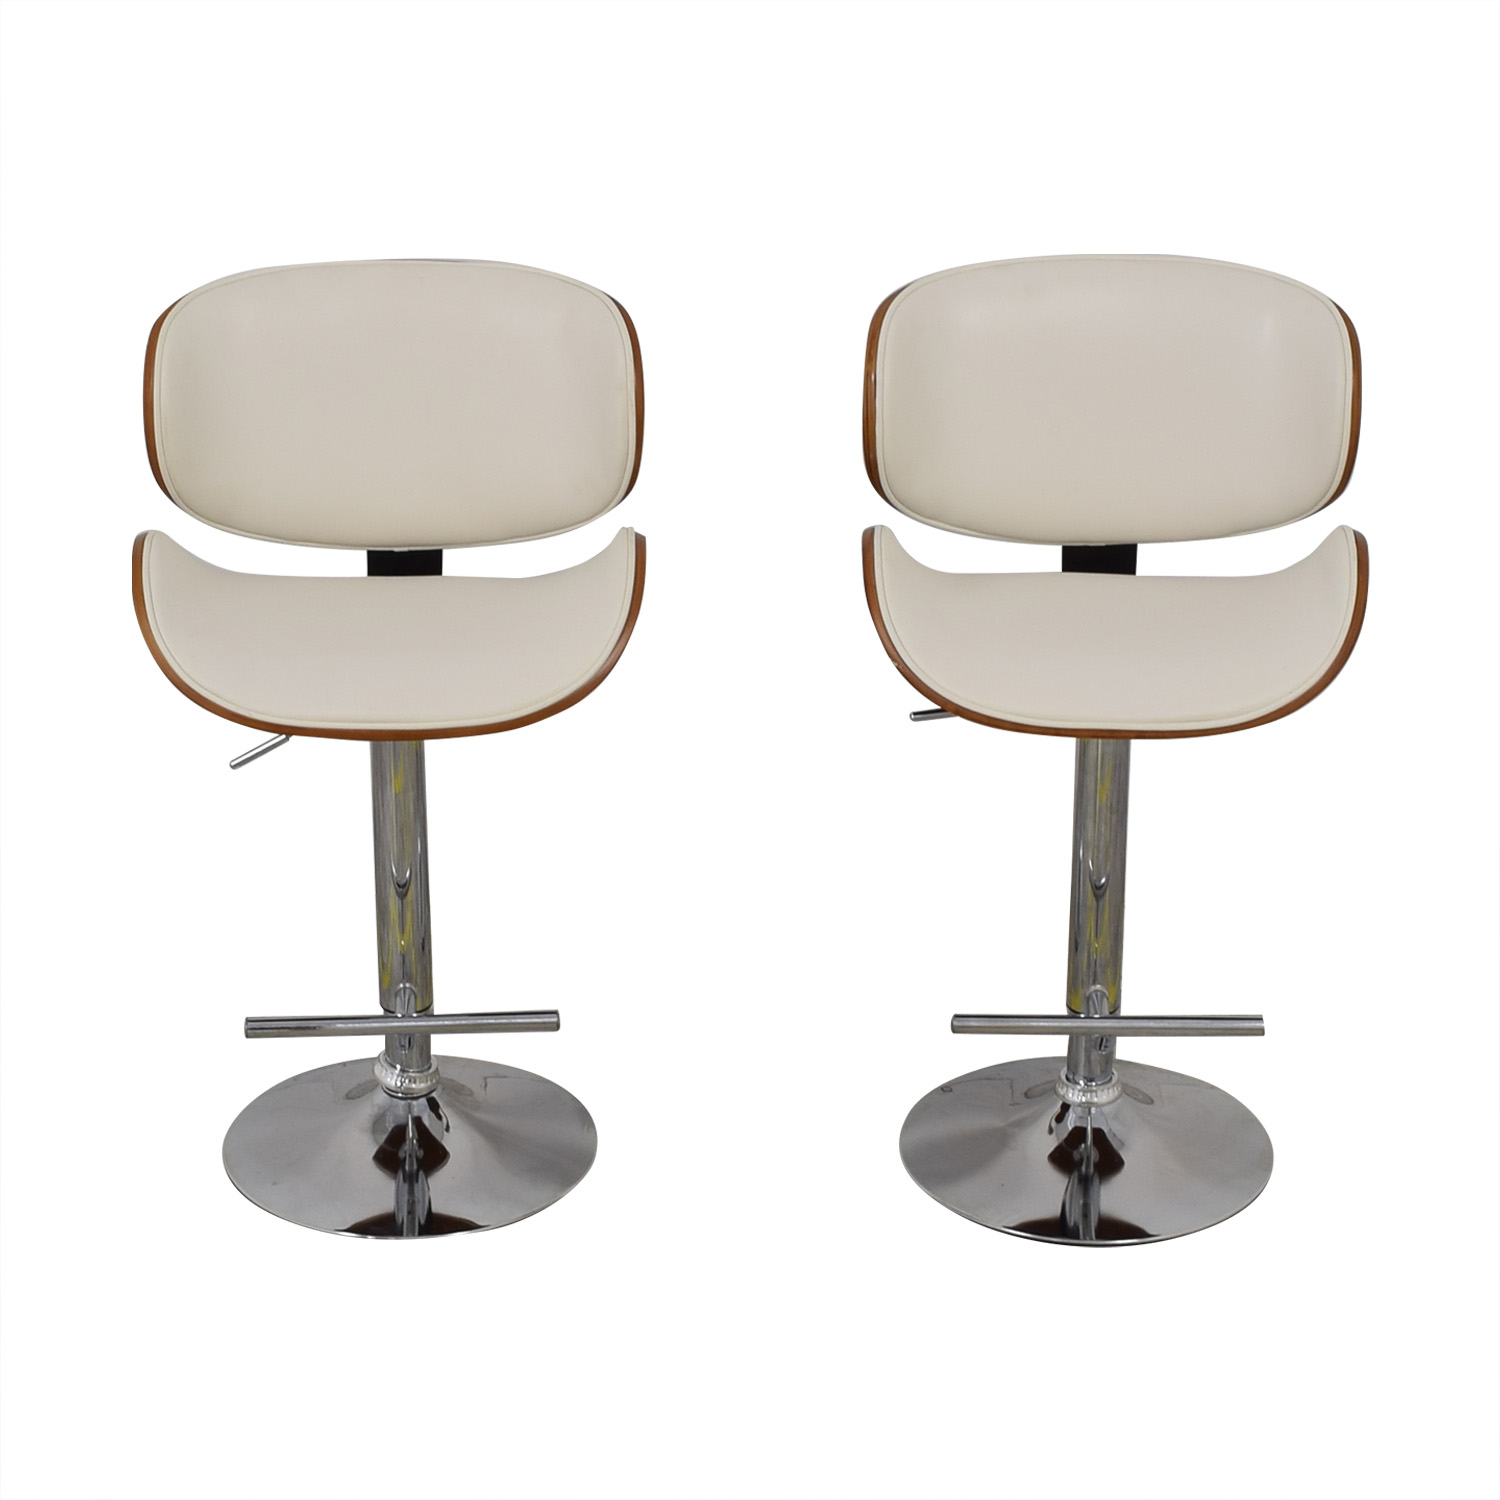 shop Raymour & Flanigan Swivel Bar Stools Raymour & Flanigan